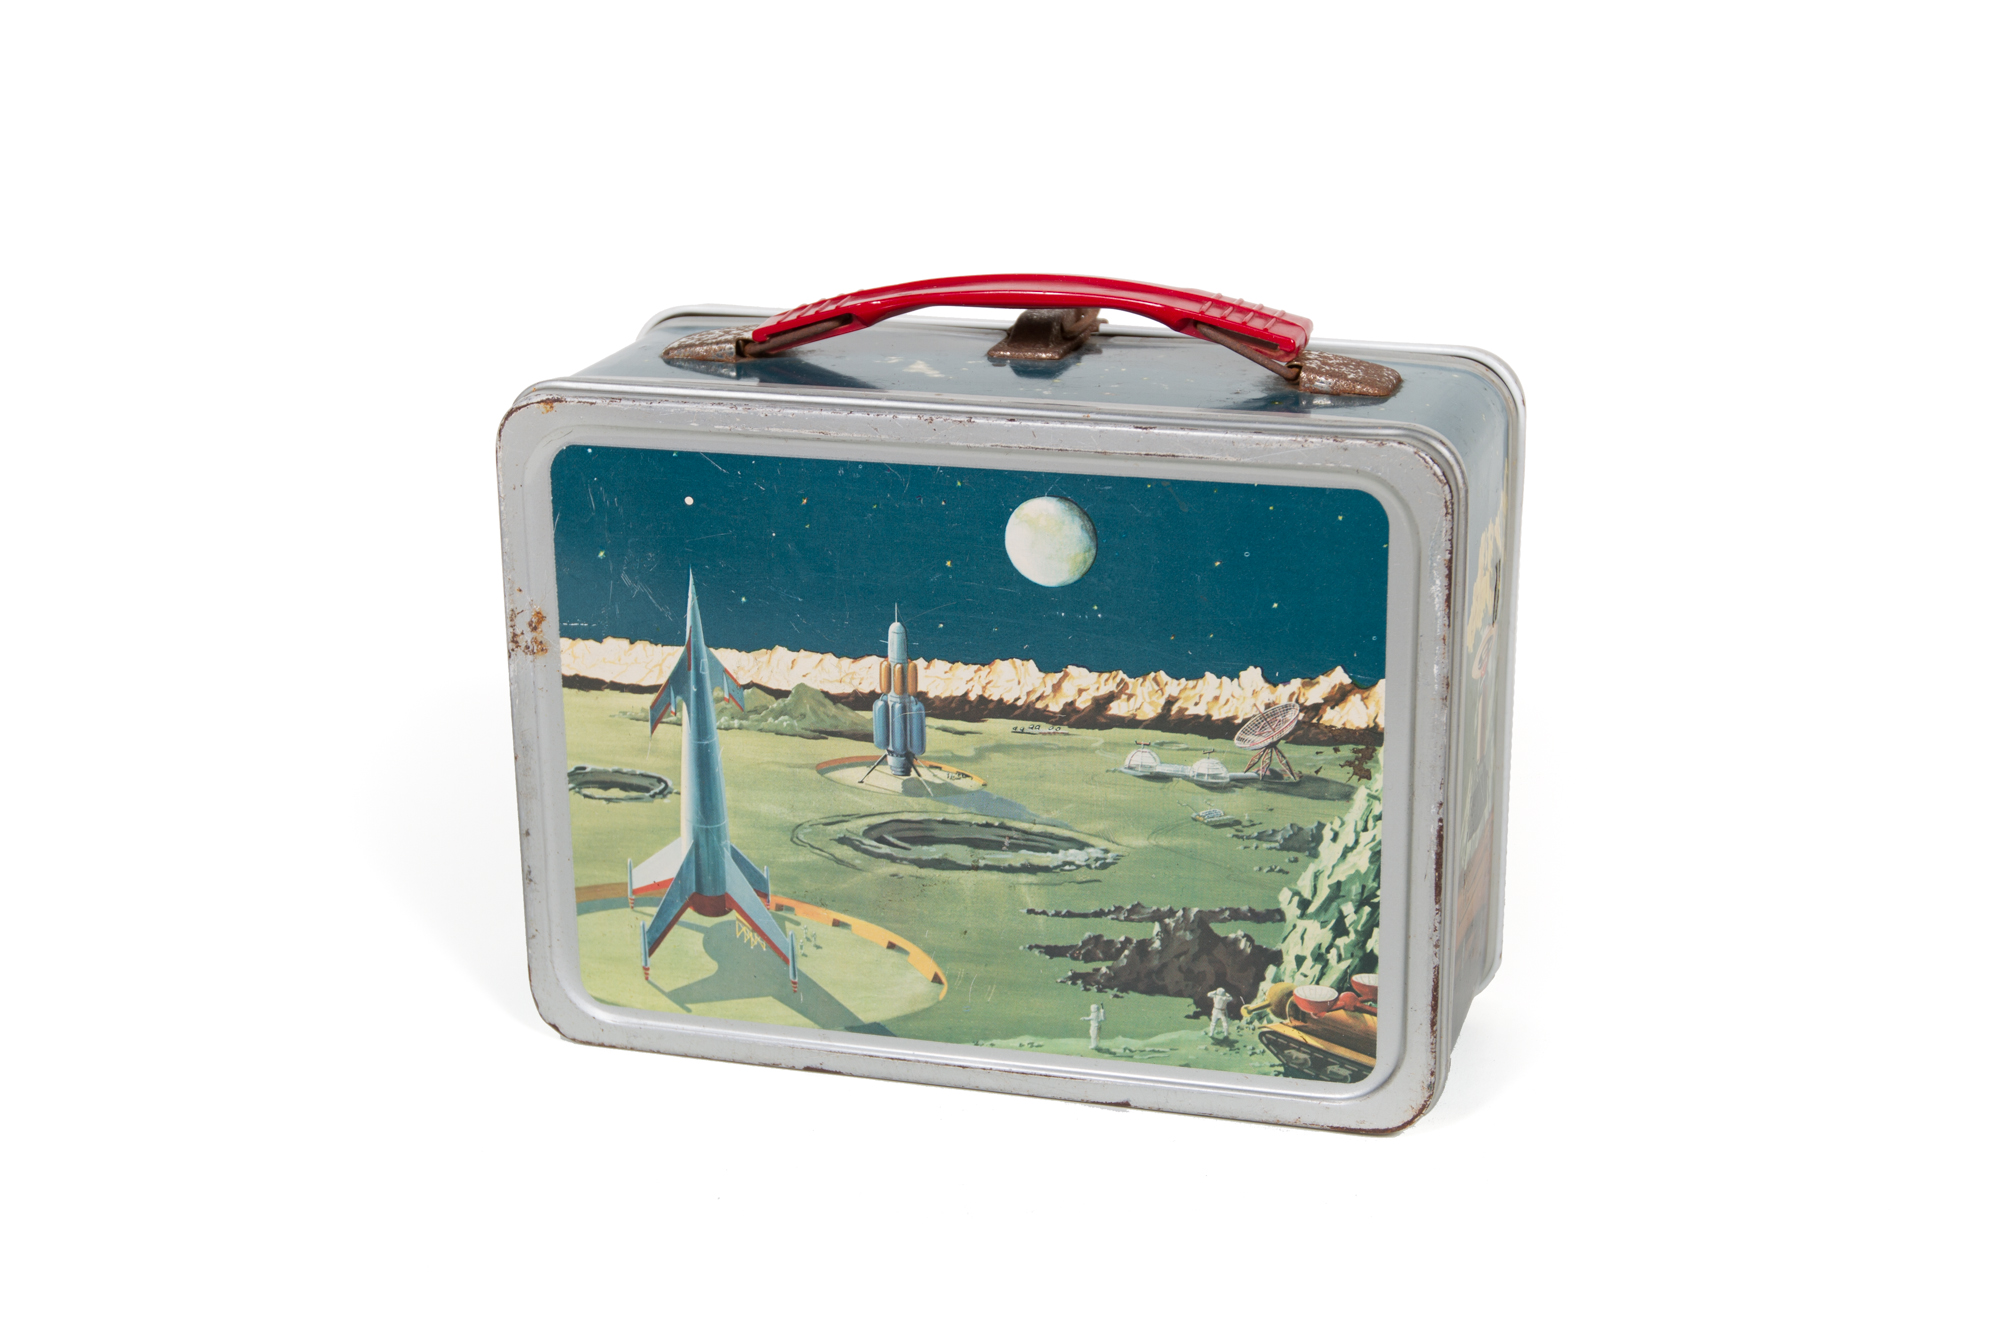 Lunch Box with Images Inspired by Chesley Bonestell Illustrations (circa 1958)